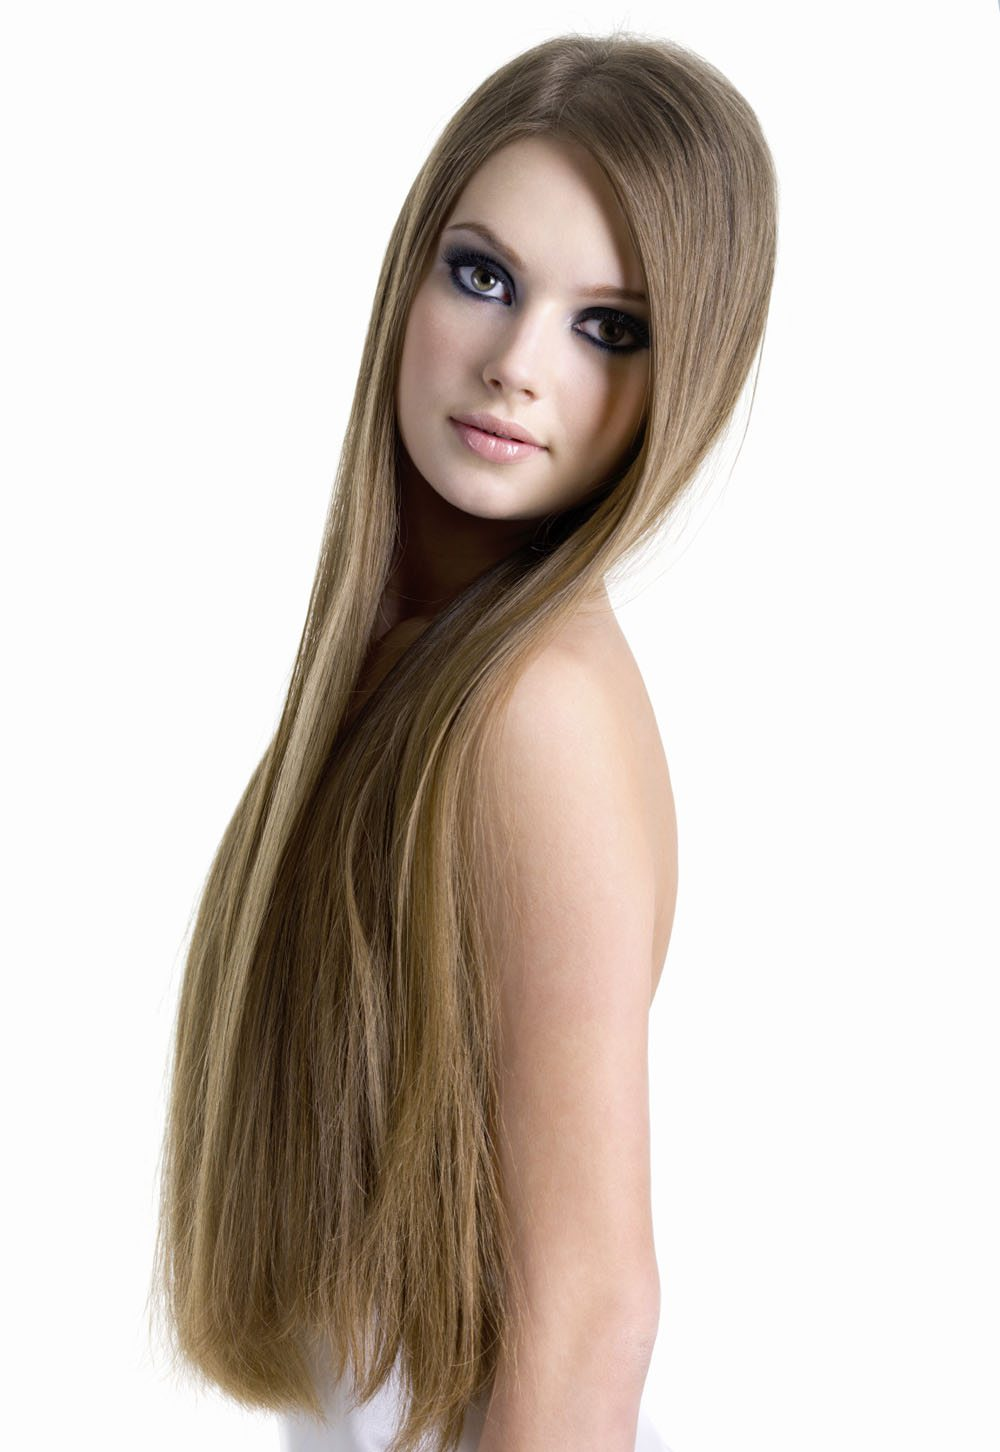 Wedding hair extensions everything you need to know about getting hair extensions for wedding day pmusecretfo Image collections